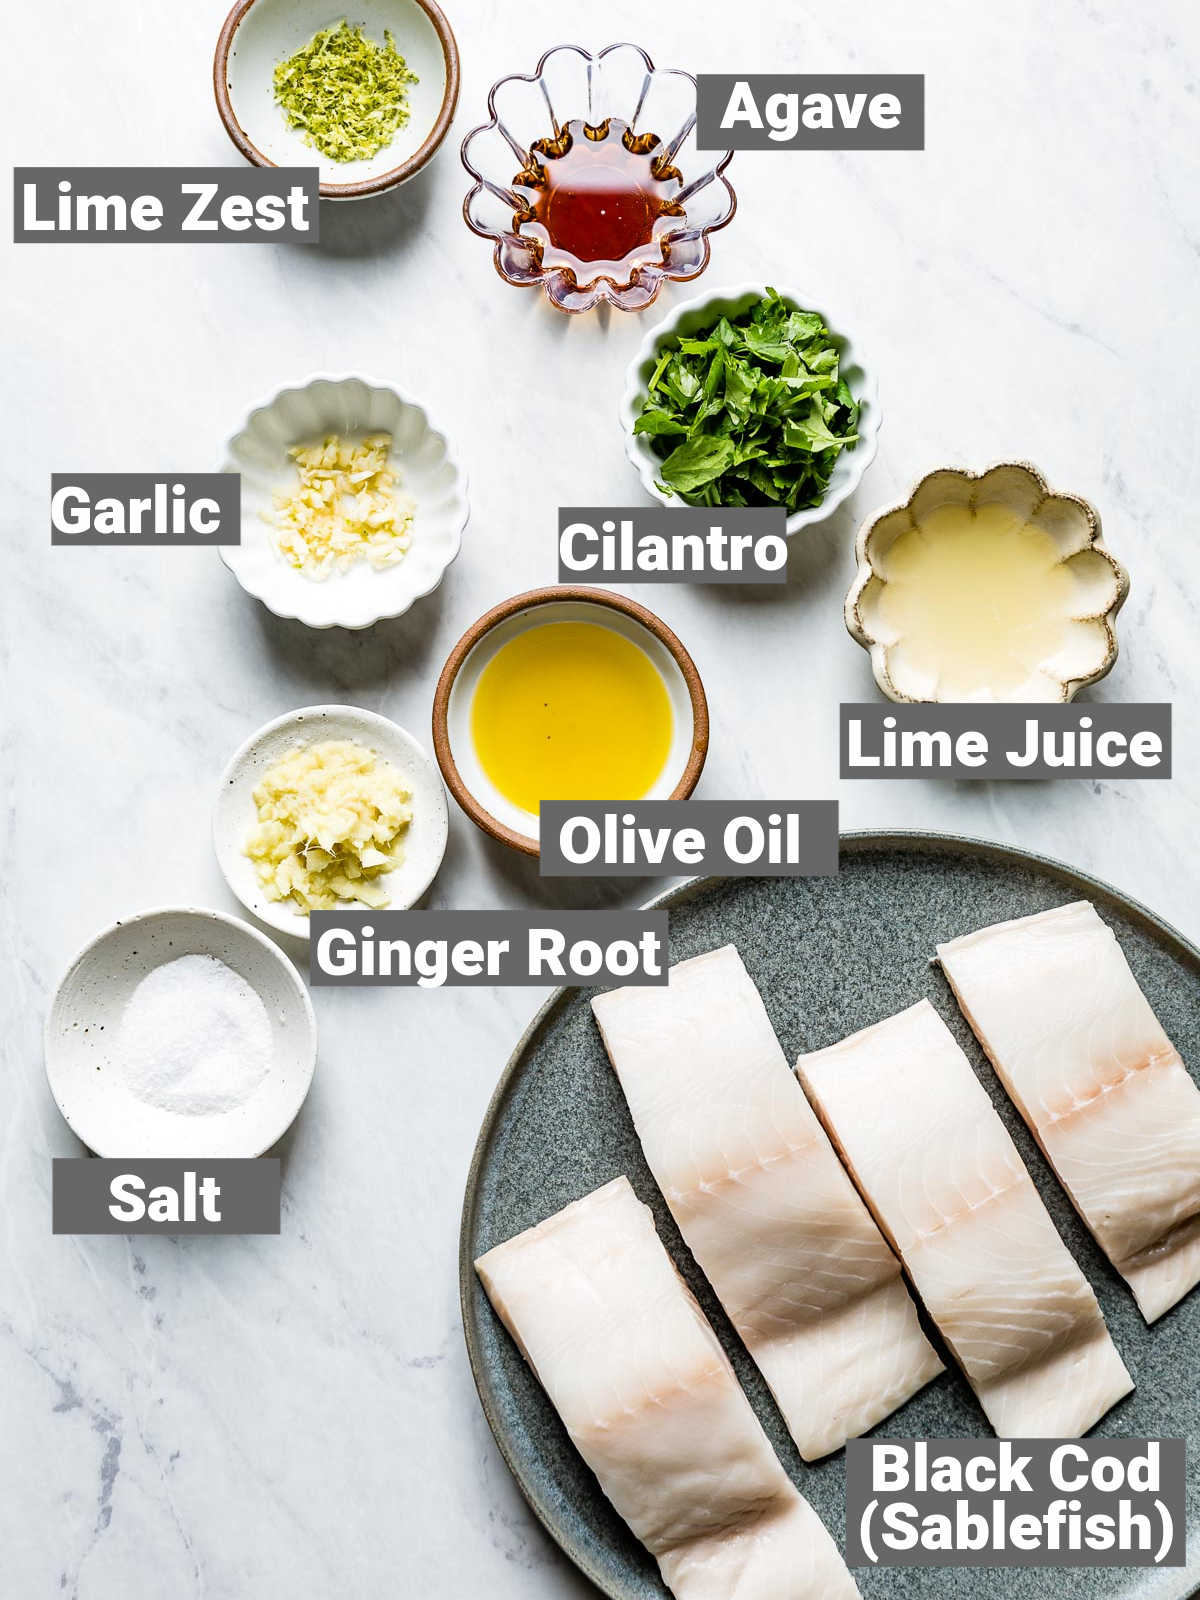 the ingredients for the black cod with labels